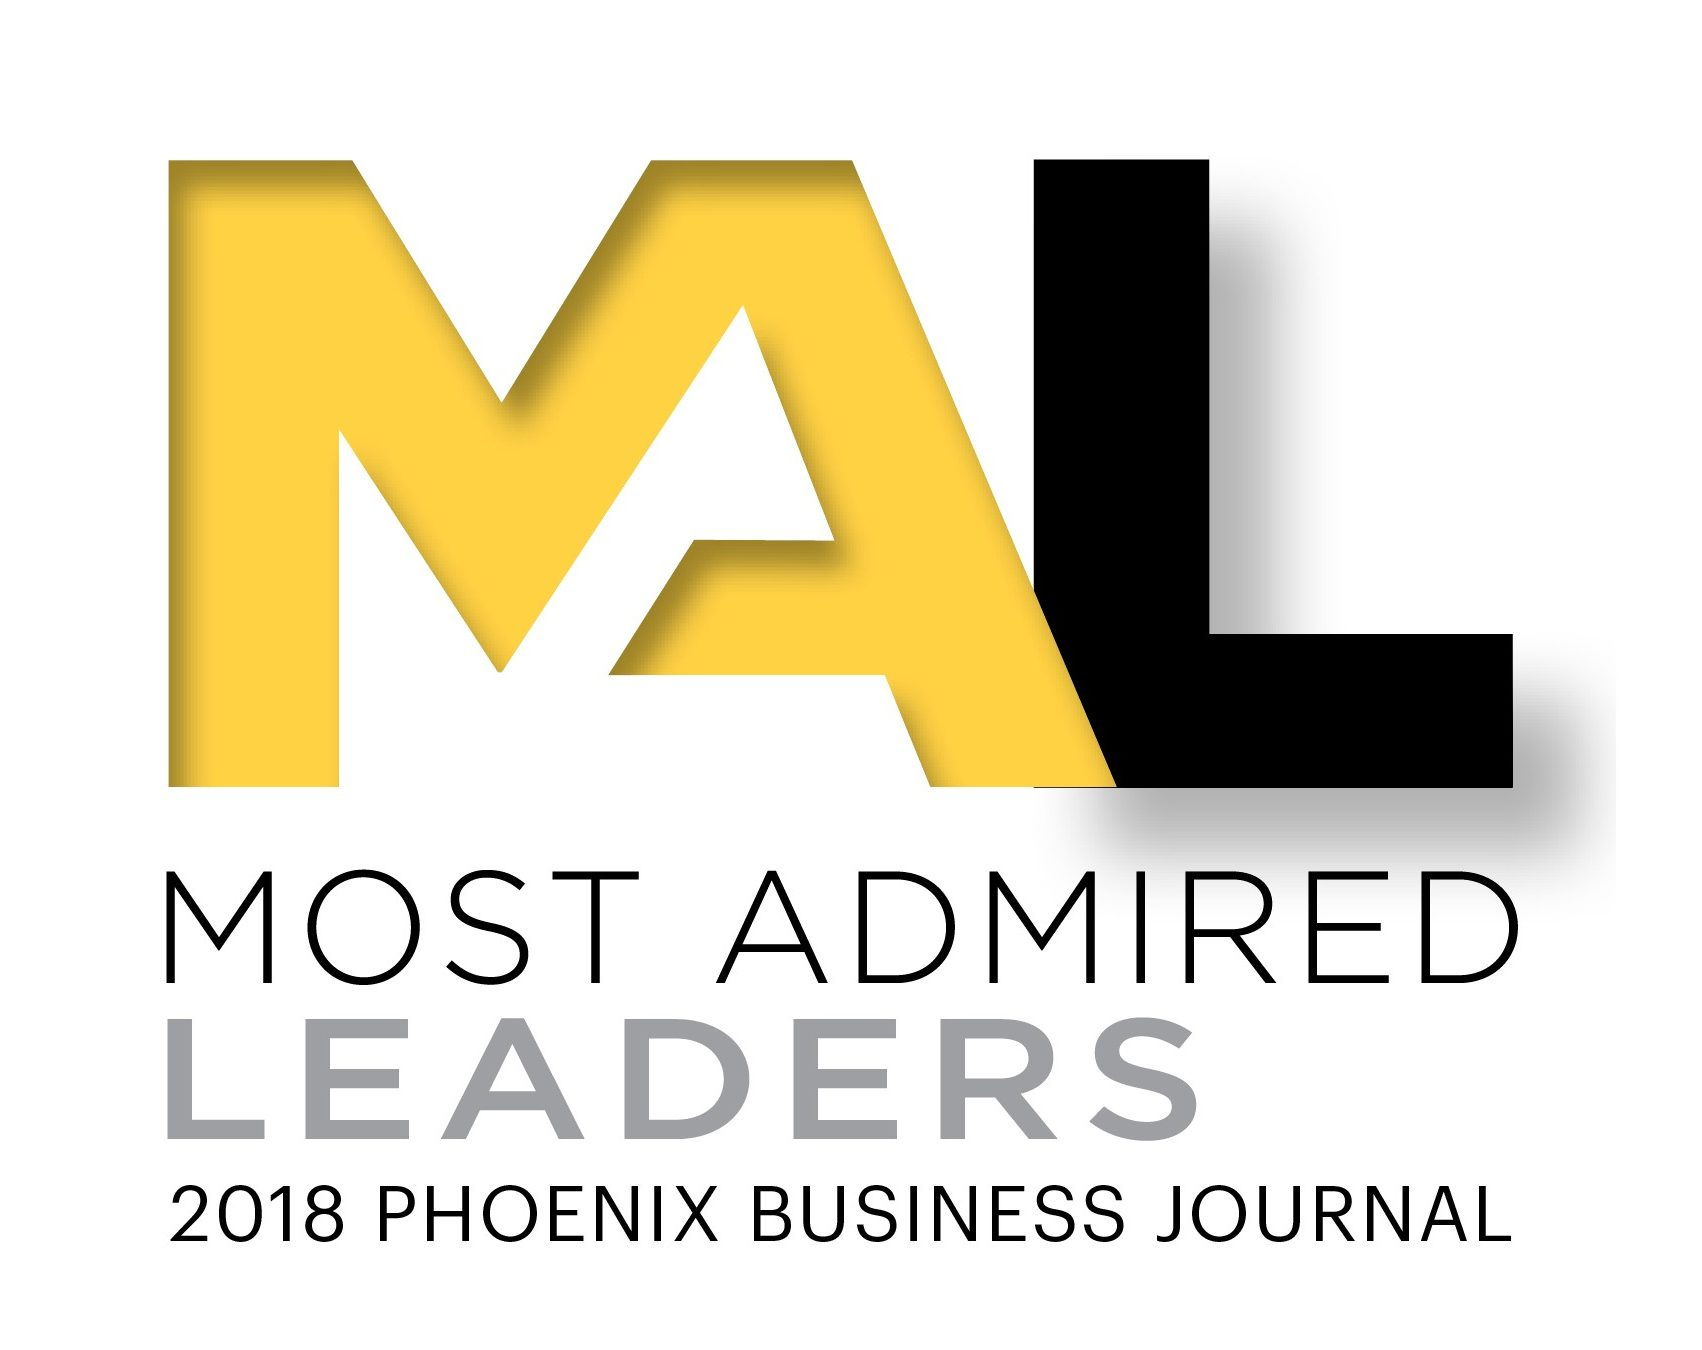 Liz Shabaker Most admired leaders